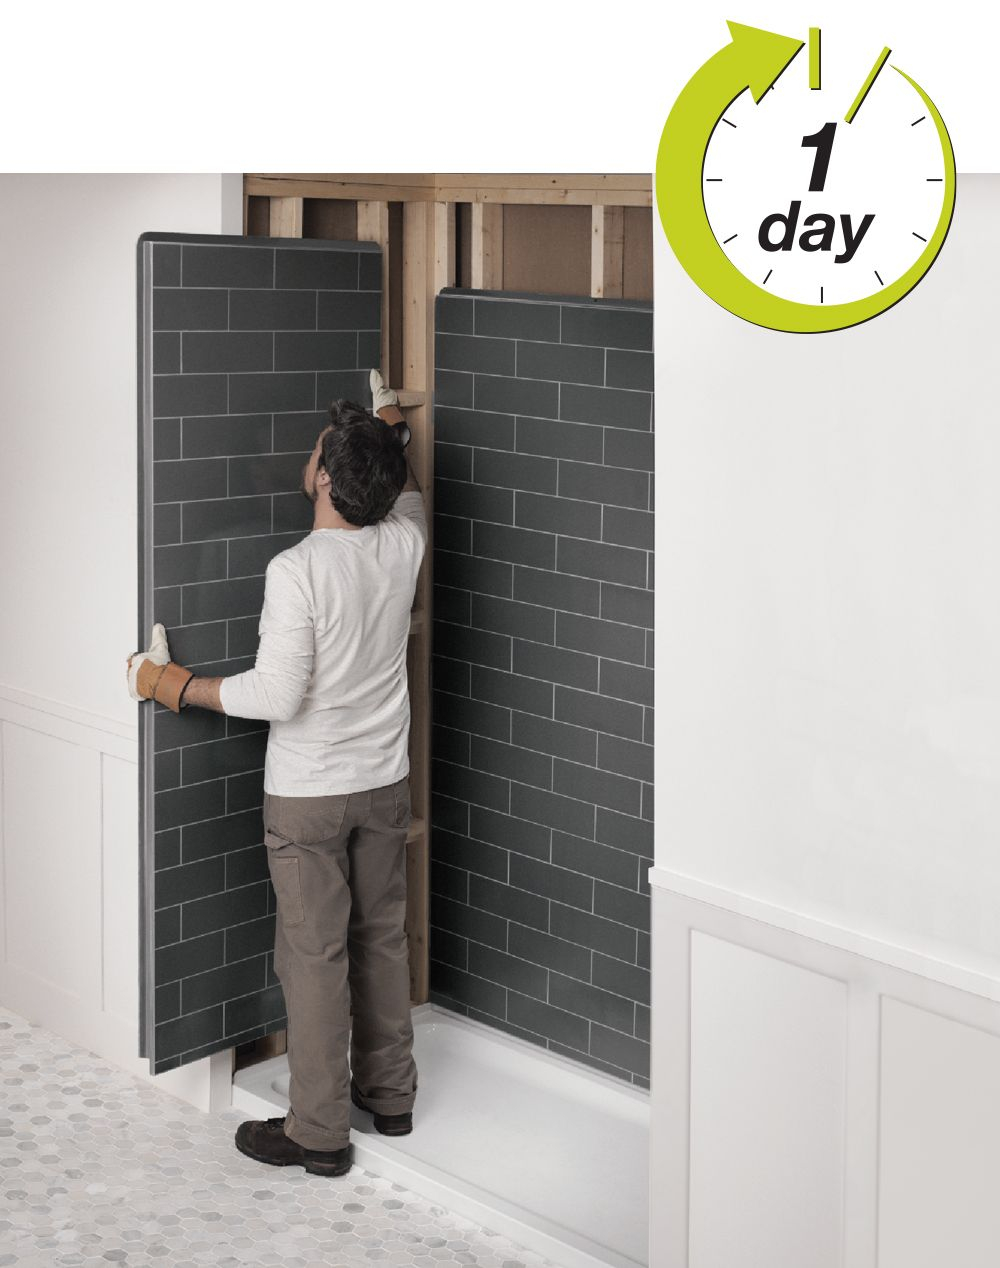 Revolutionary Shower Bathroom Remodel Look Like Tiles Maax Hwy within sizing 1000 X 1268